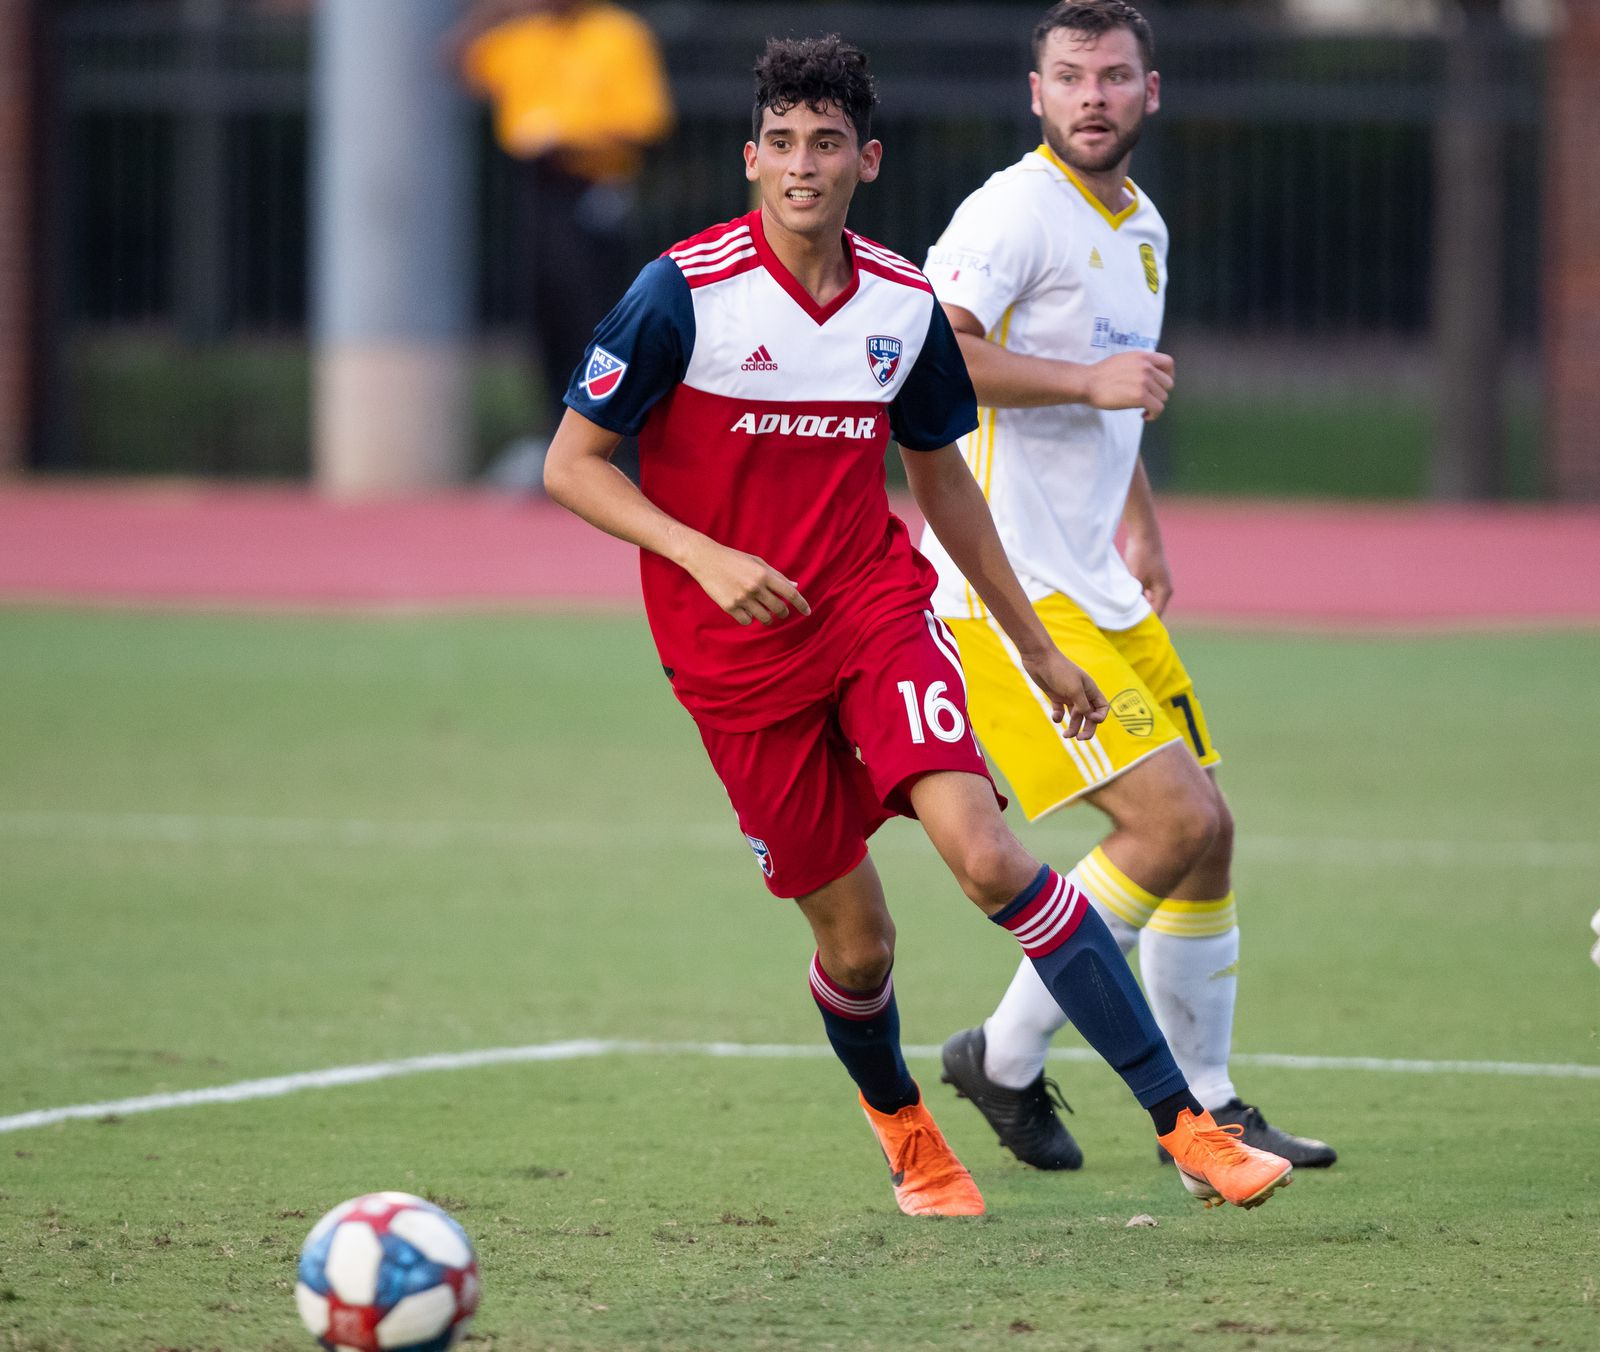 DALLAS, TX - JUNE 19: Ricardo Pepi in action during the Lamar Hunt U.S. Open Cup round of 16 soccer game between FC Dallas and New Mexico United on June 19, 2019 at Westcott Field in Dallas, Texas.  (Photo by Matthew Visinsky)